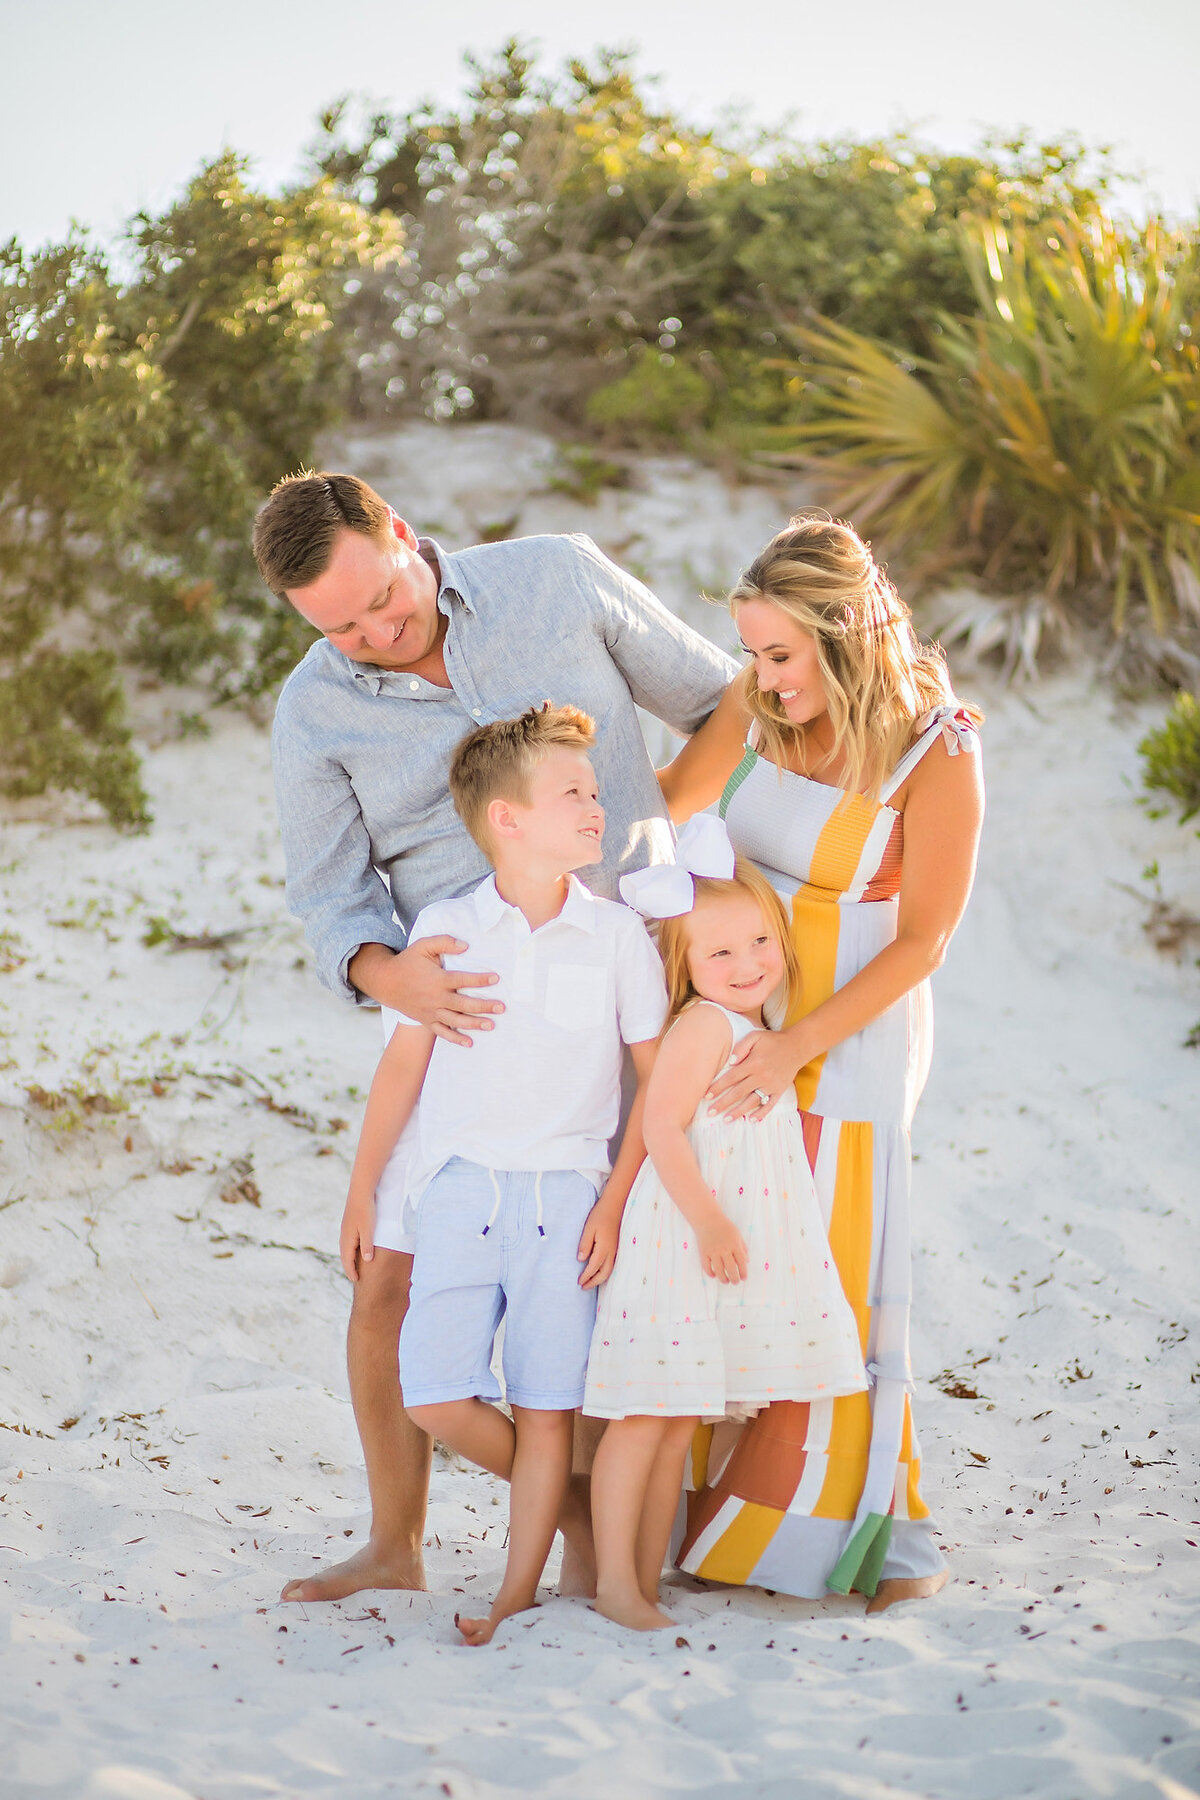 ClearleyFamily2019-5